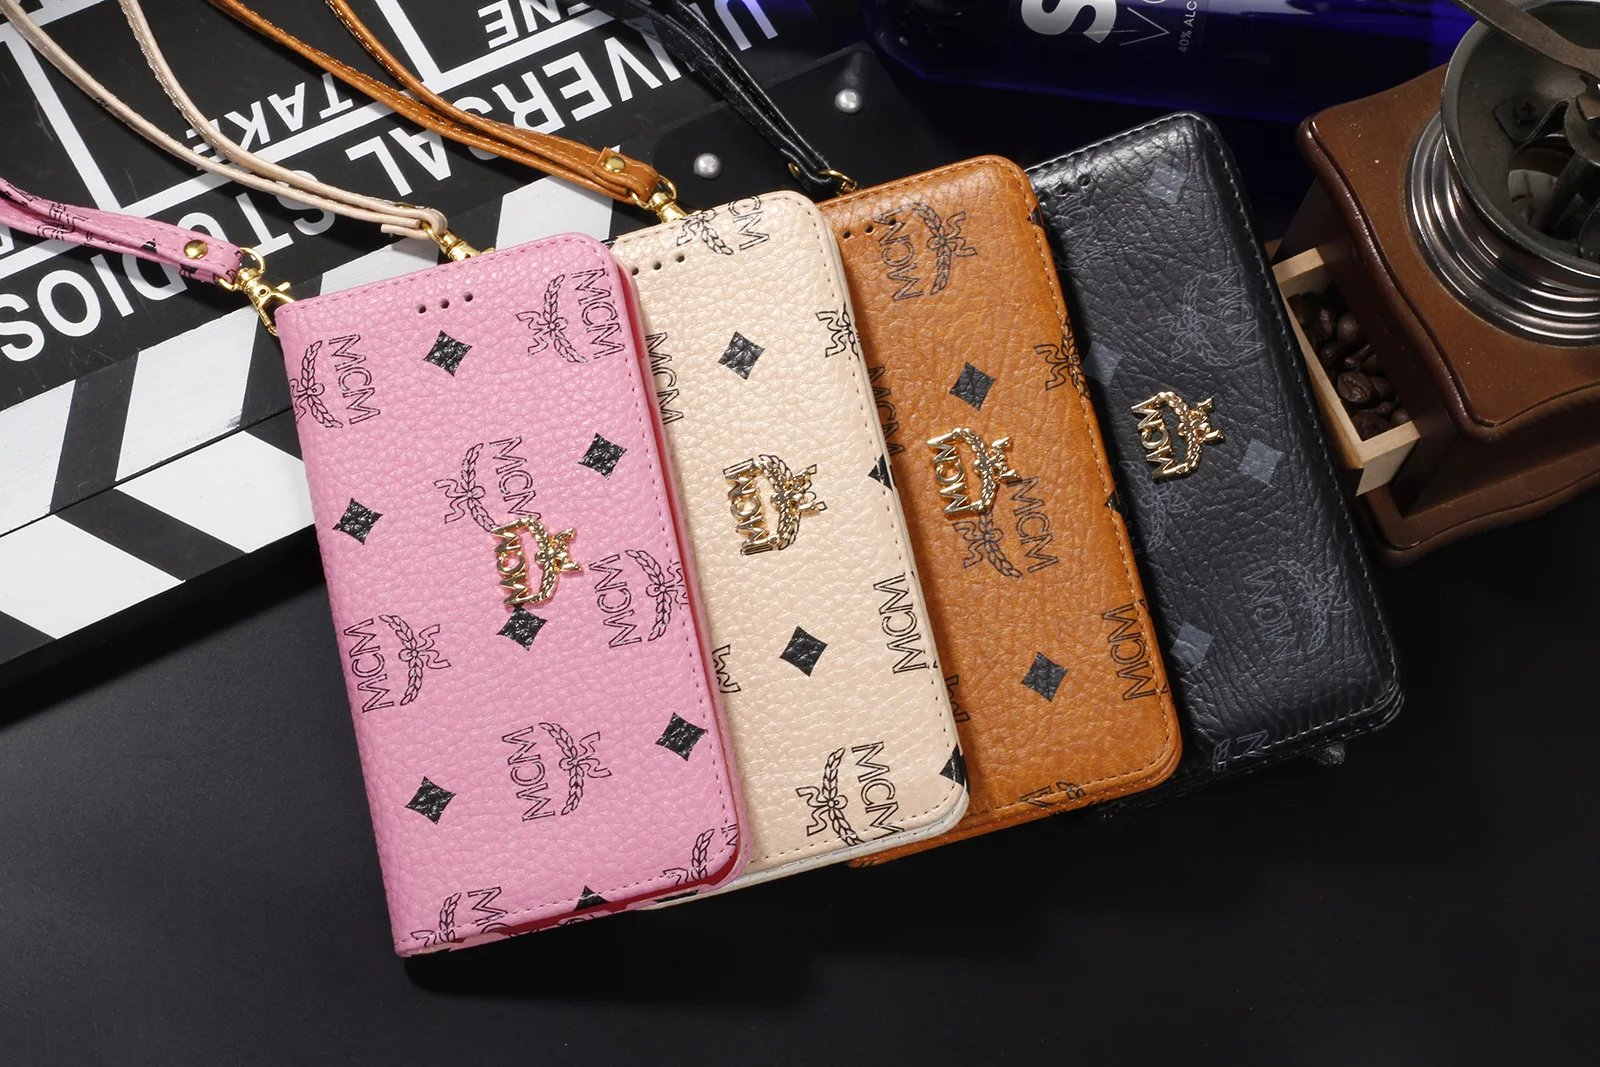 best case iphone 6s iphone 6s skin case fashion iphone6s case a phone case new iphone 6s cases iphone cases 6s iphone 6s cases for women best covers for iphone 6s iphone cass